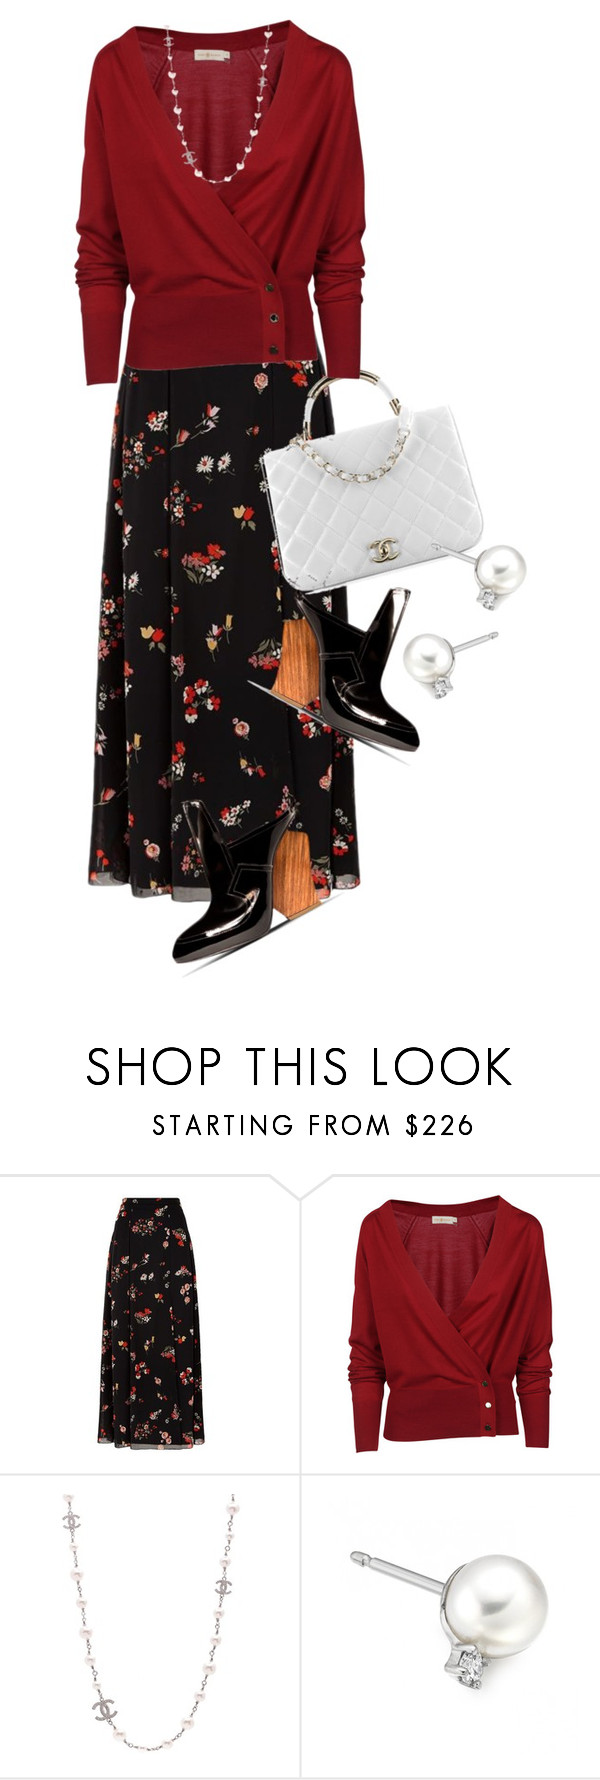 """""""OOOK Galliano Wedge Heels (2)"""" by queenrachietemplateaddict ❤ liked on Polyvore featuring RED Valentino, Chanel, Tory Burch and John Galliano"""